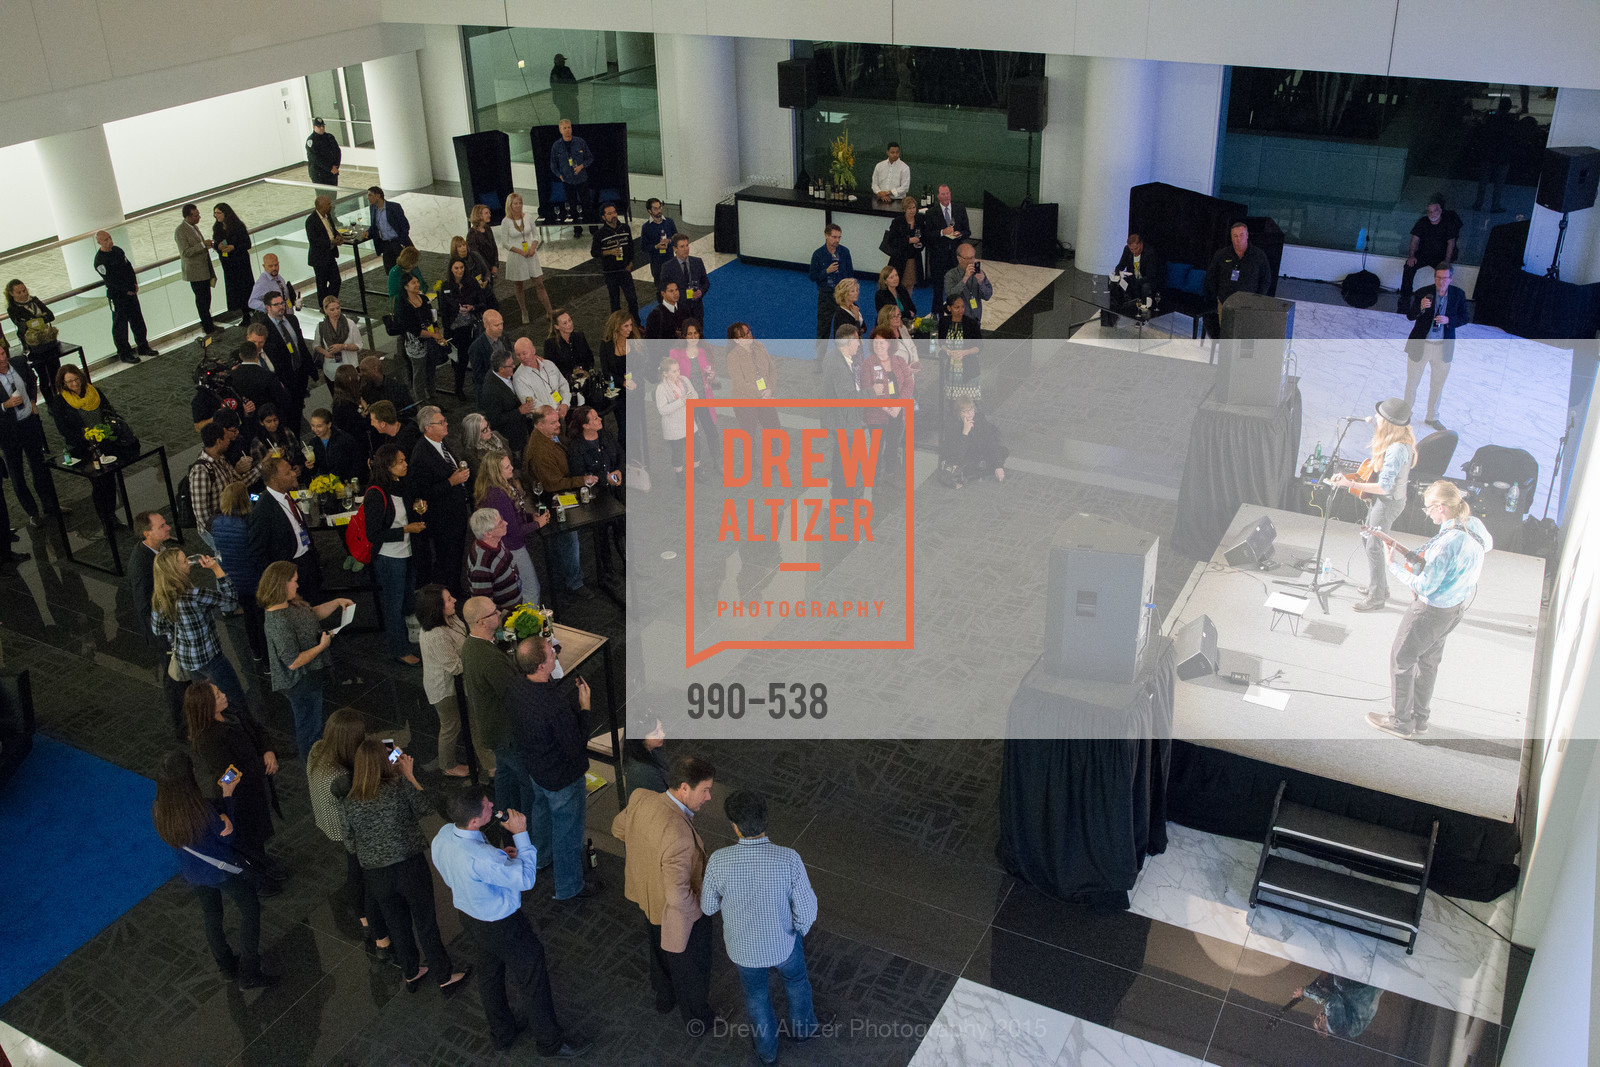 Performance, East Bay Innovation Forum, November 17th, 2015, Photo,Drew Altizer, Drew Altizer Photography, full-service event agency, private events, San Francisco photographer, photographer California